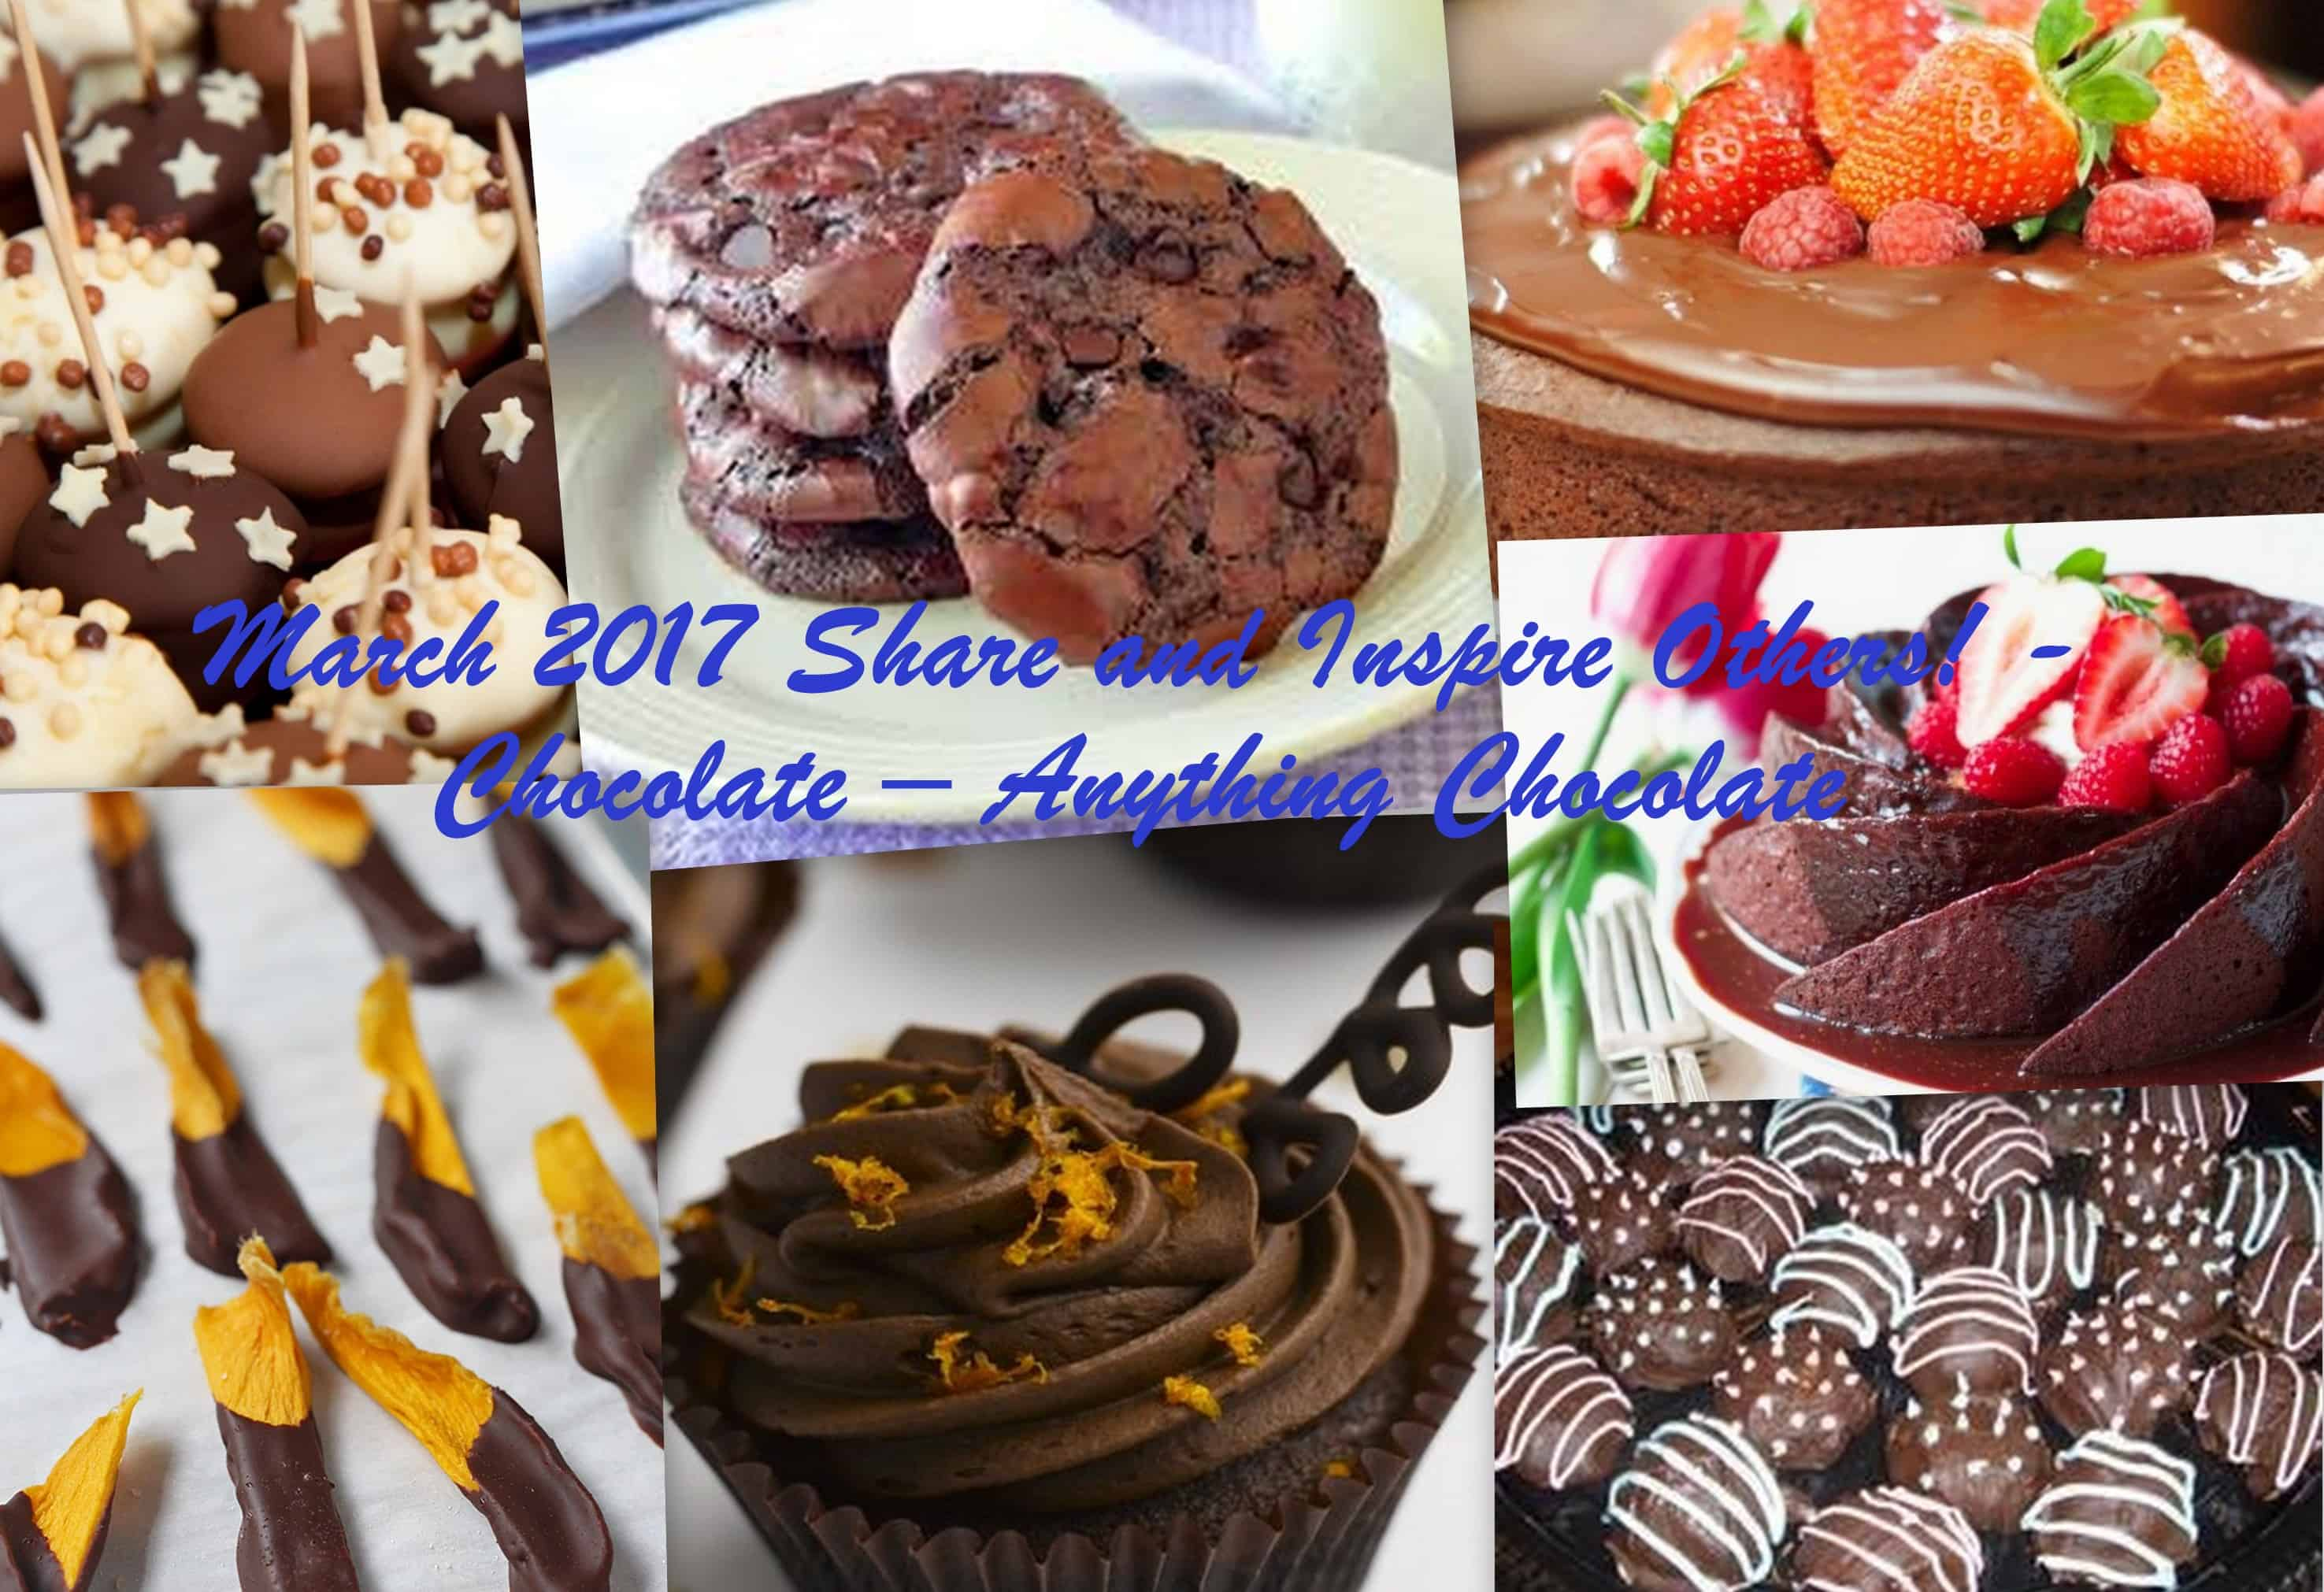 March 2017 Share and Inspire Others! -Chocolate – Anything Chocolate